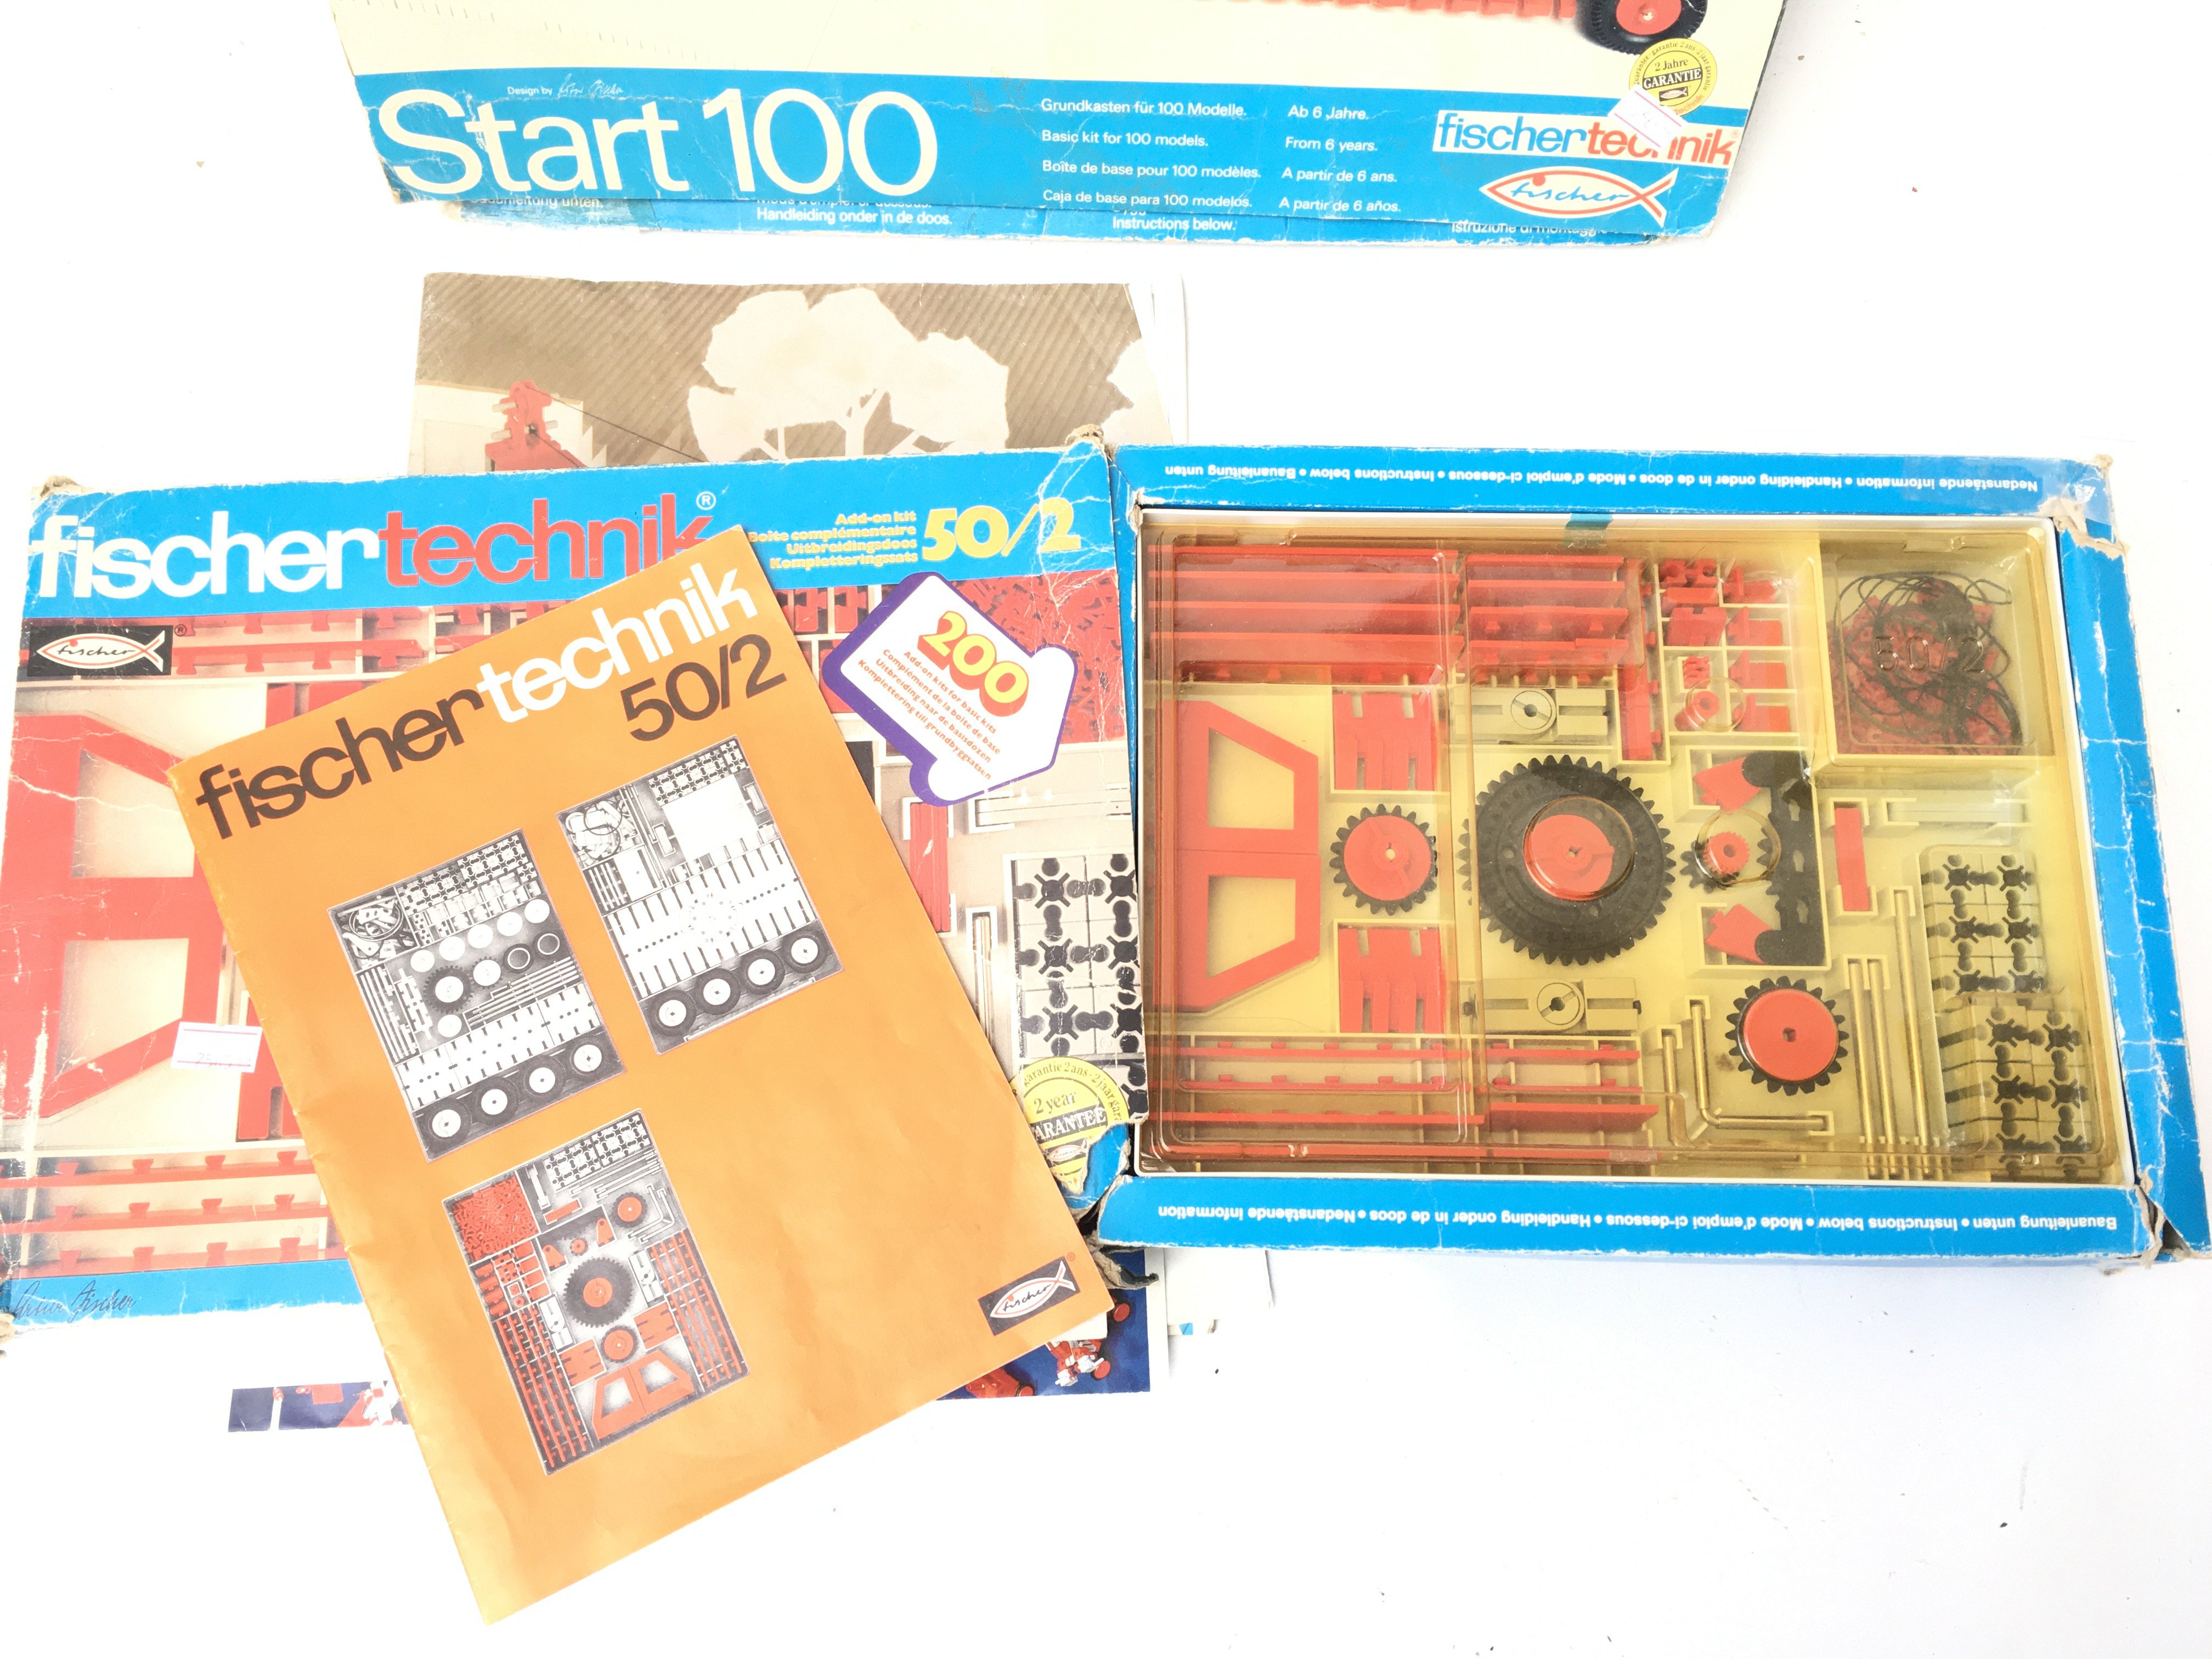 2 X Boxed Fisher technik sets. - Image 2 of 3